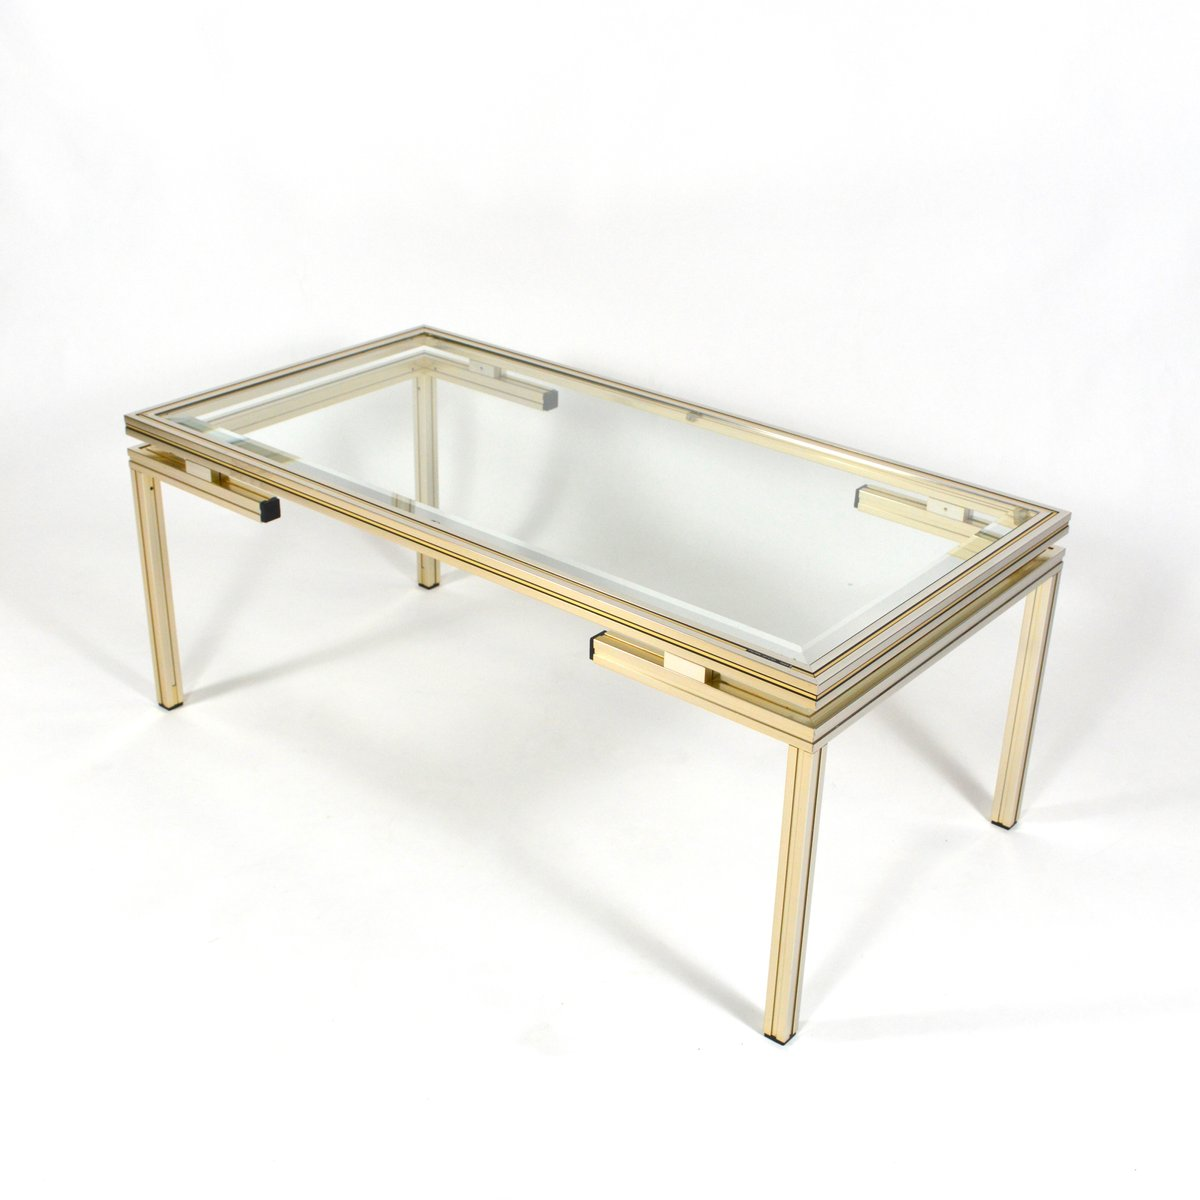 French Silver And Gold Coffee Table By Pierre Vandel 1970s